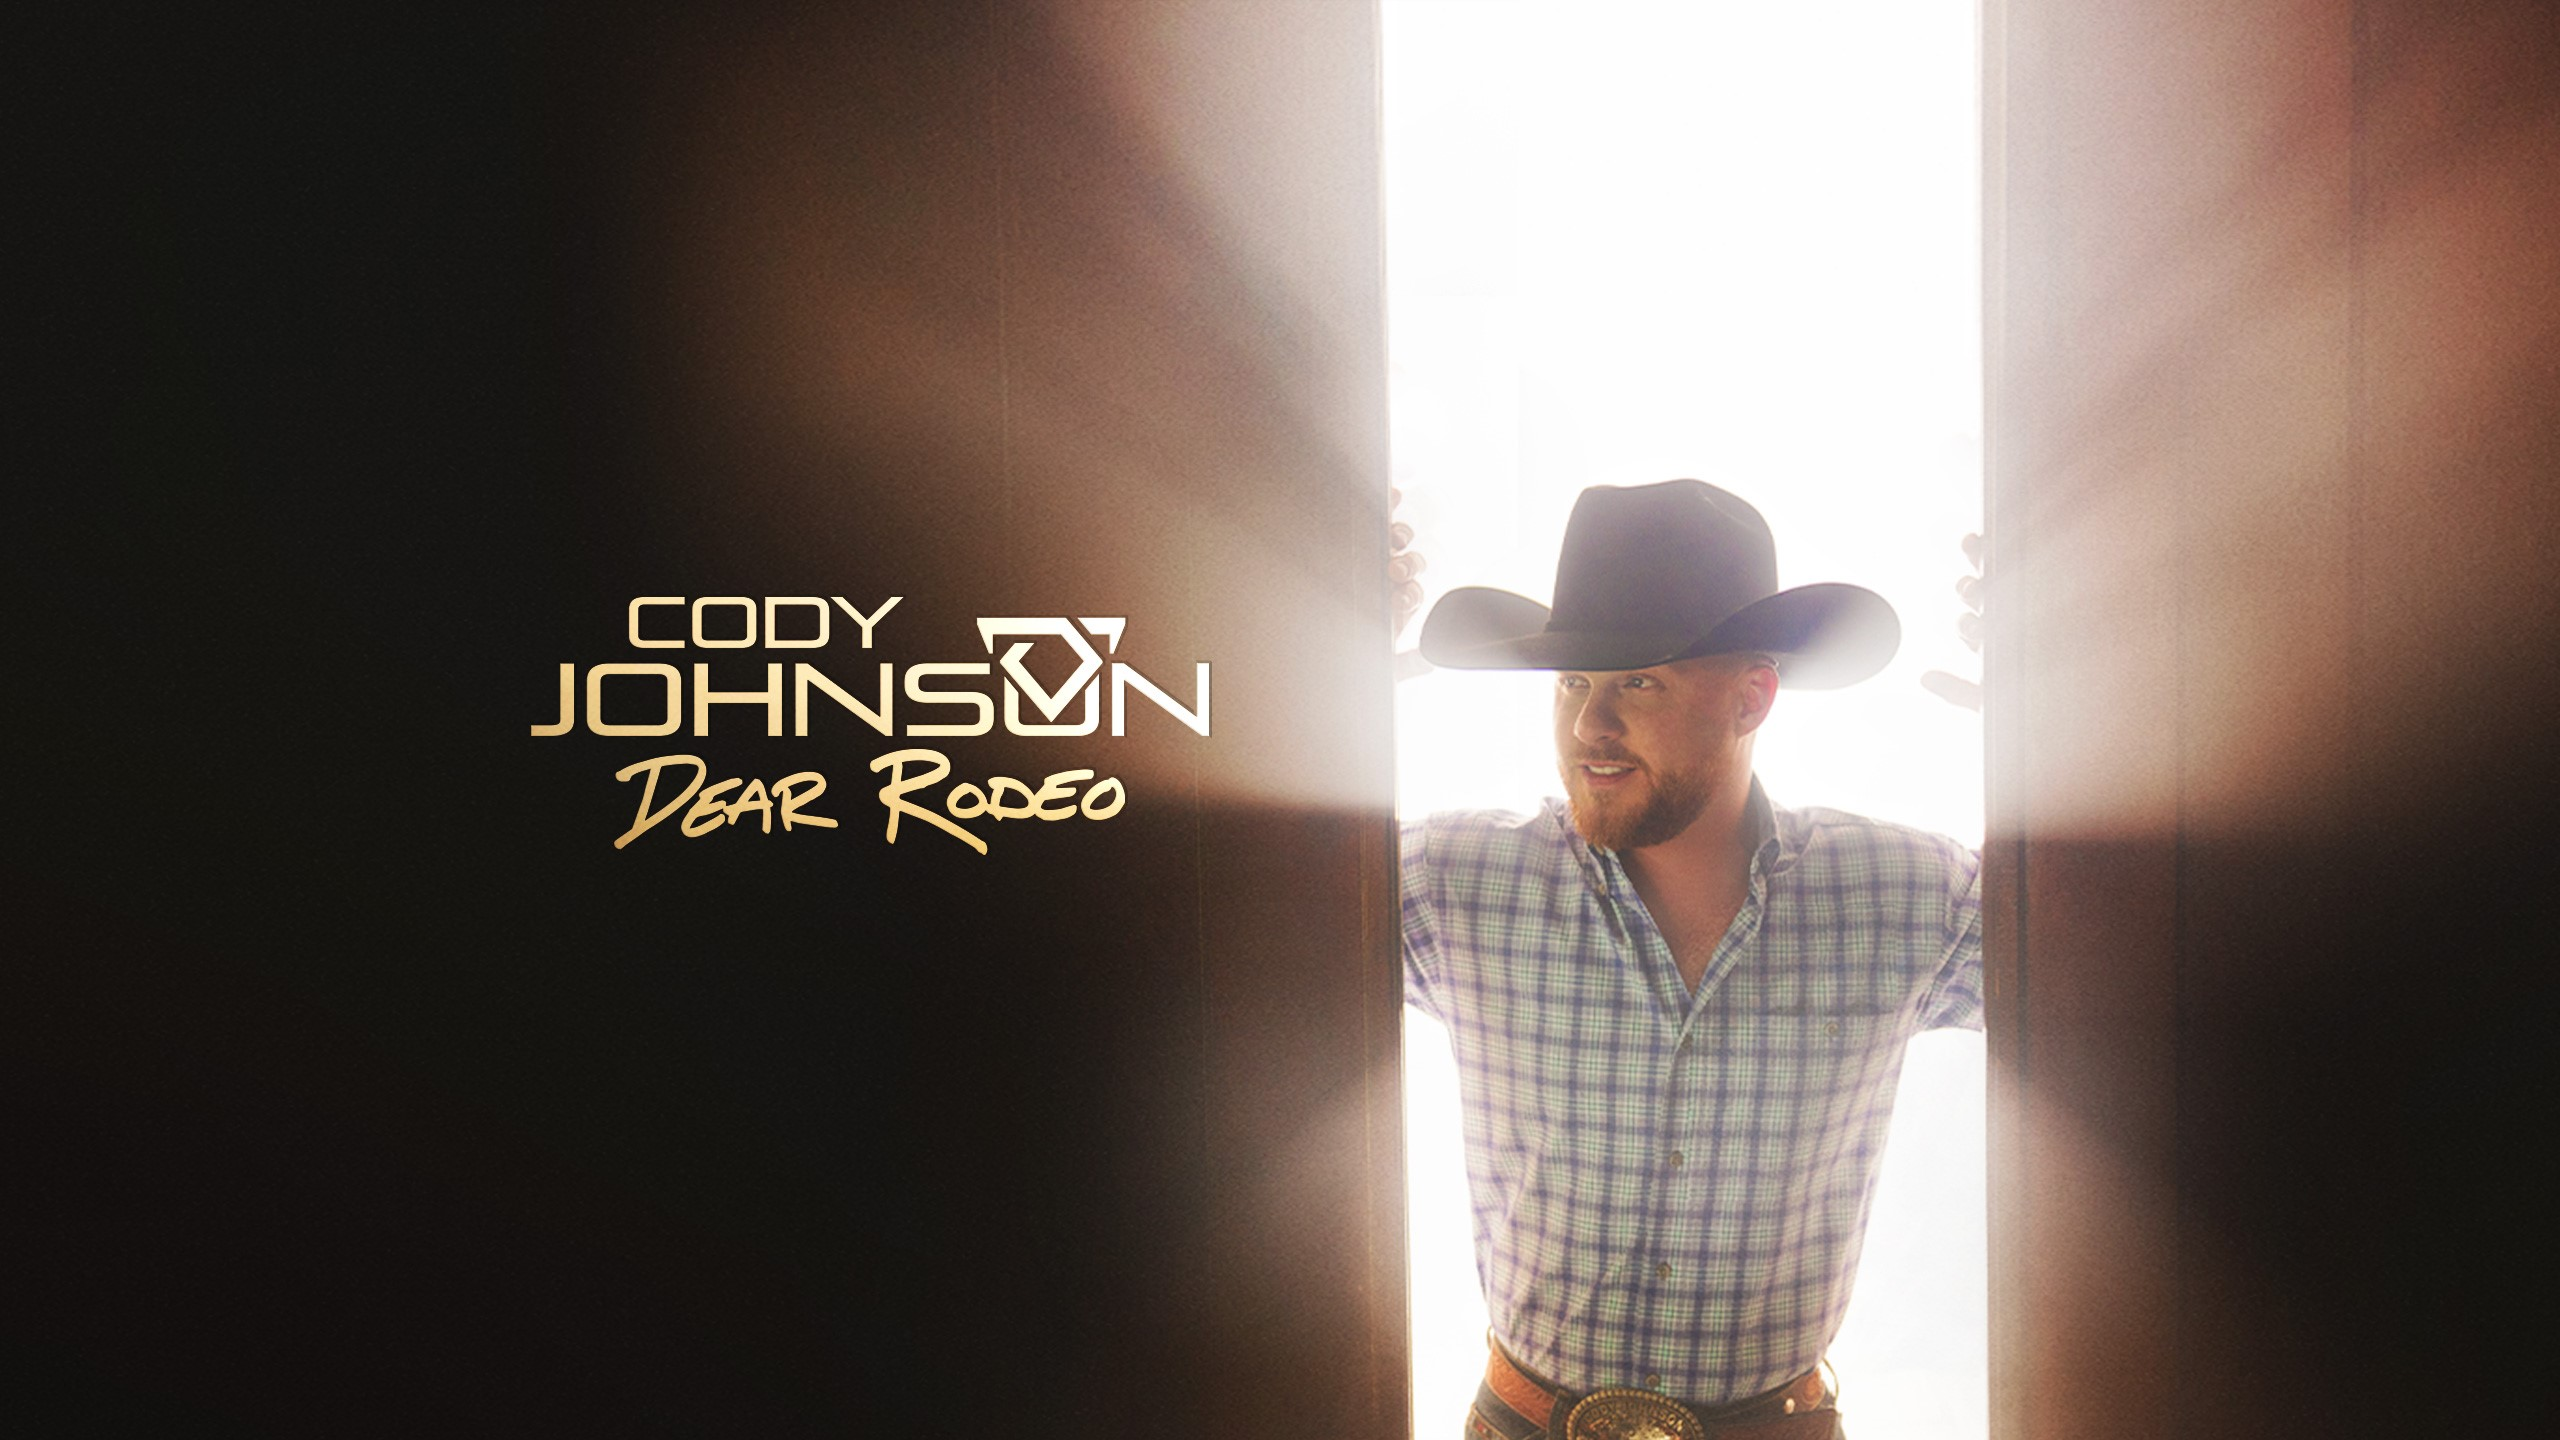 "CODY JOHNSON TOP 3 MOST-ADDED AT COUNTRY RADIO TODAY (9/8) WITH REFLECTIVE SINGLE ""DEAR RODEO"""